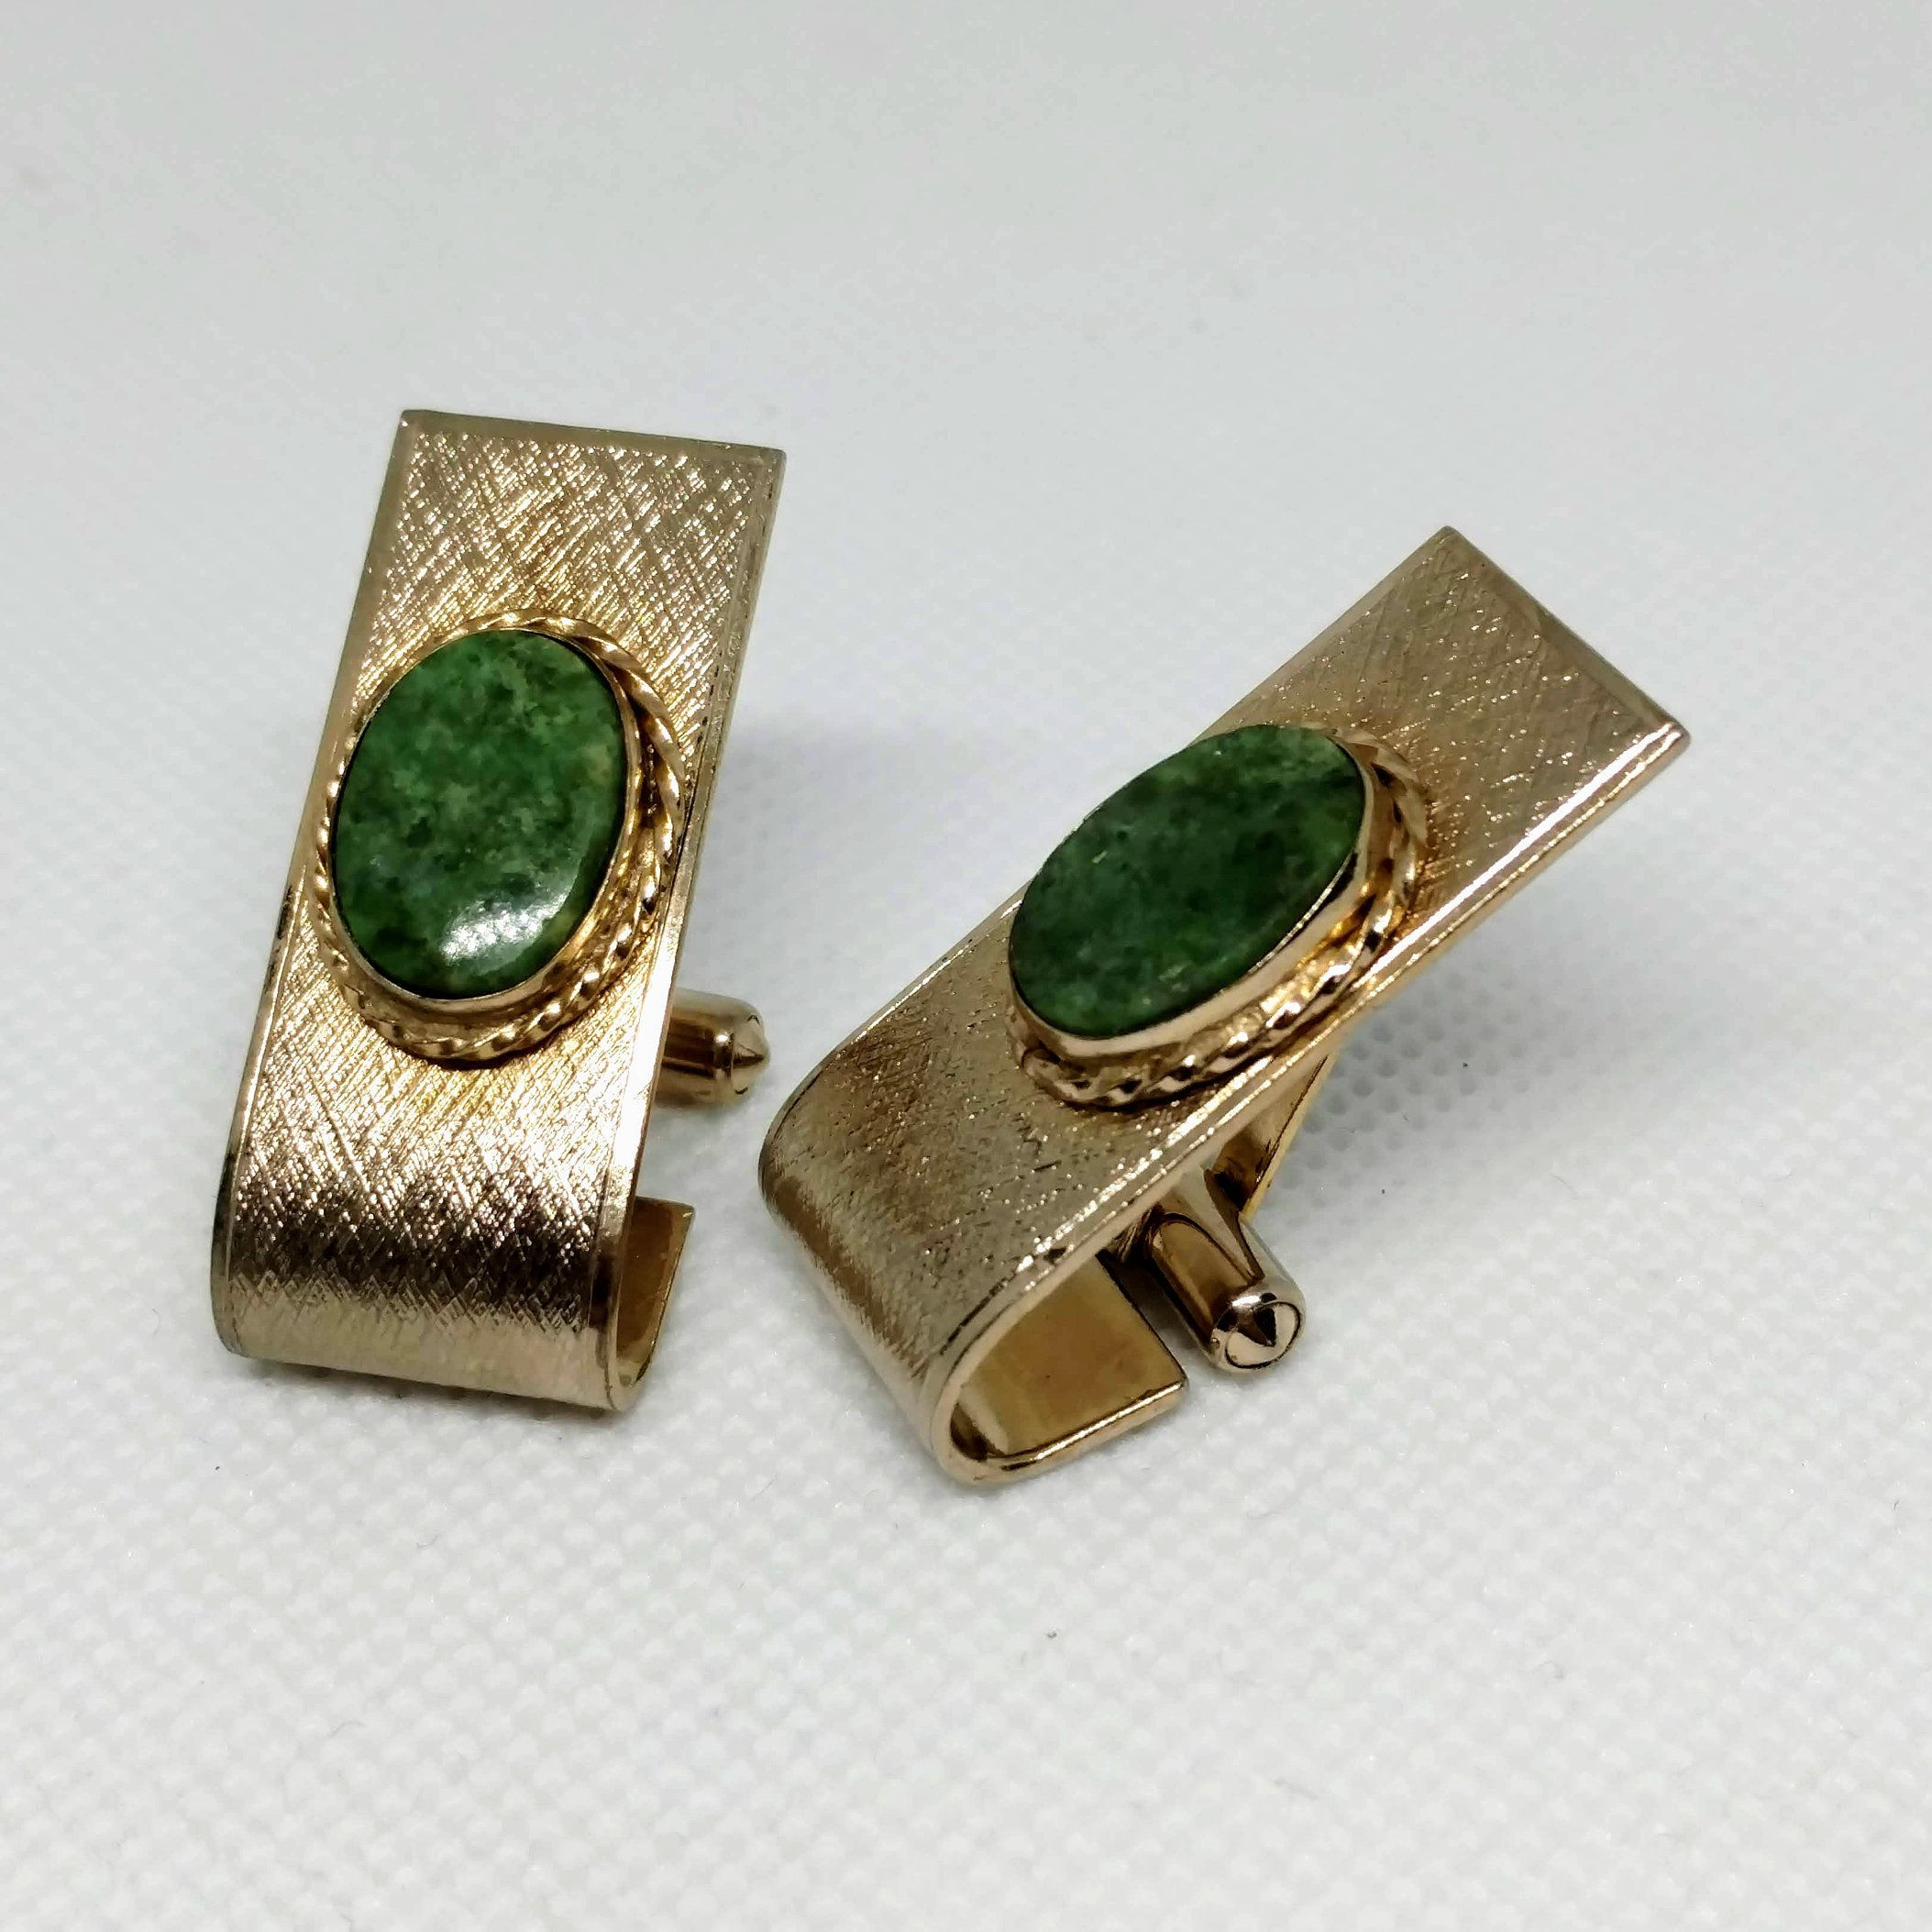 Select Gifts Cuff links Green crystal cufflinks~Emerald Crystal Green Silver-tone Cufflinks Hand Made Pouch